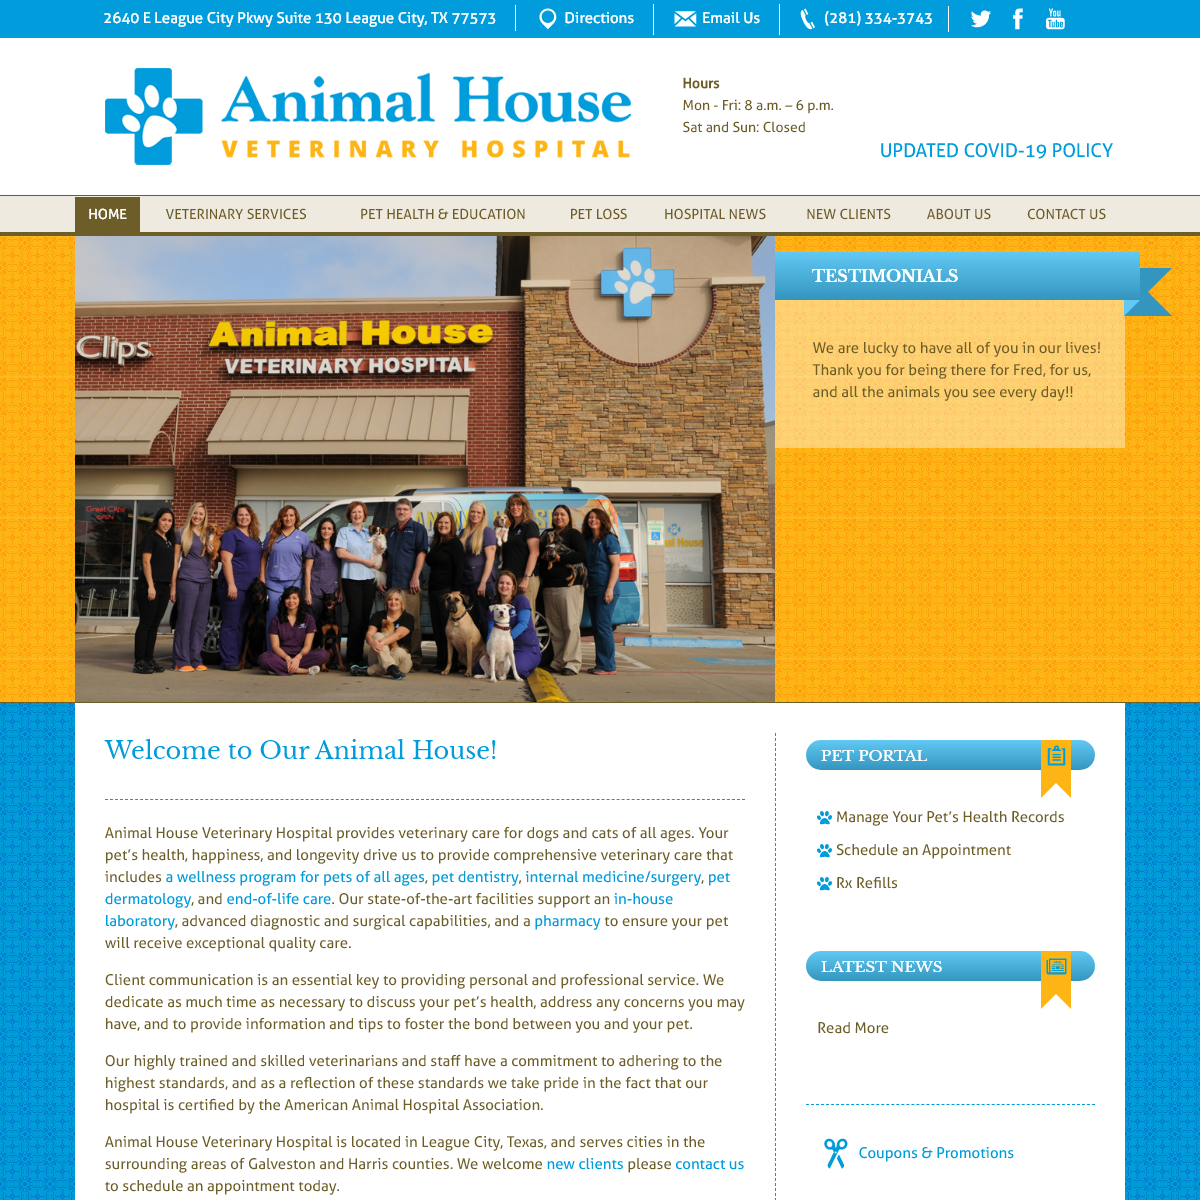 Animal House Veterinary Hospital - Animal House Veterinary Hospital